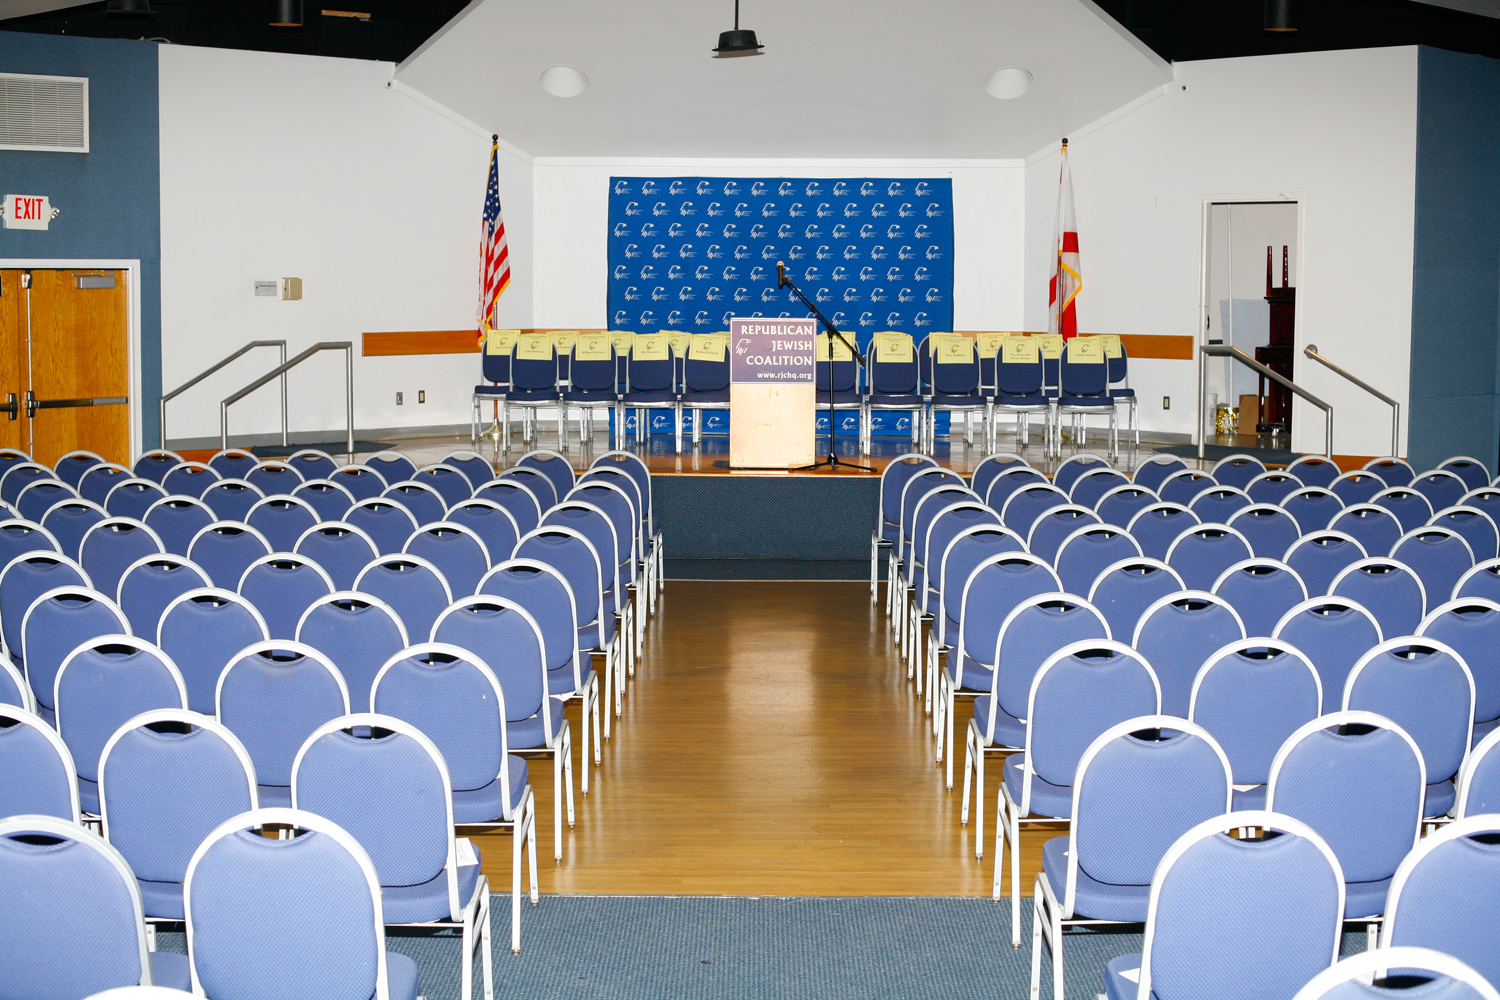 The scene before a Gingrich rally at the Republican Jewish Coalition, Delray Beach, Fla., January 27, 2012.